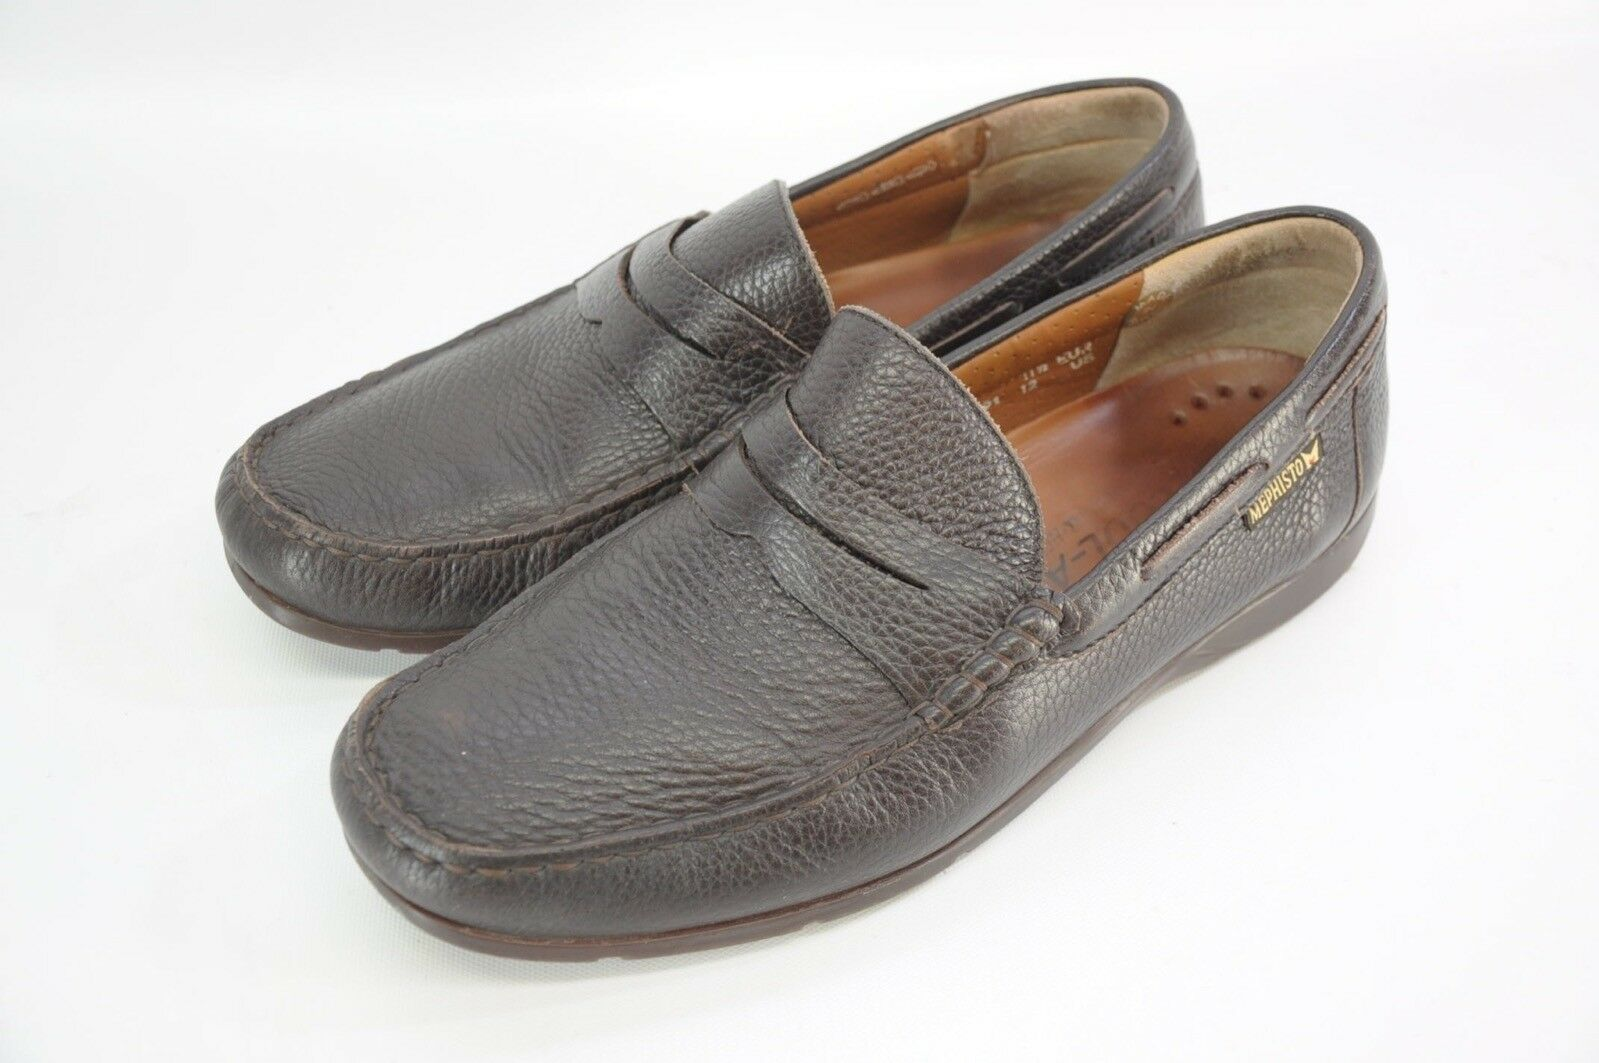 Scarpe casual da uomo  Mephisto Spinnaker Air Relax Slip On Penny Loafer Brown Leather Shoes France 12